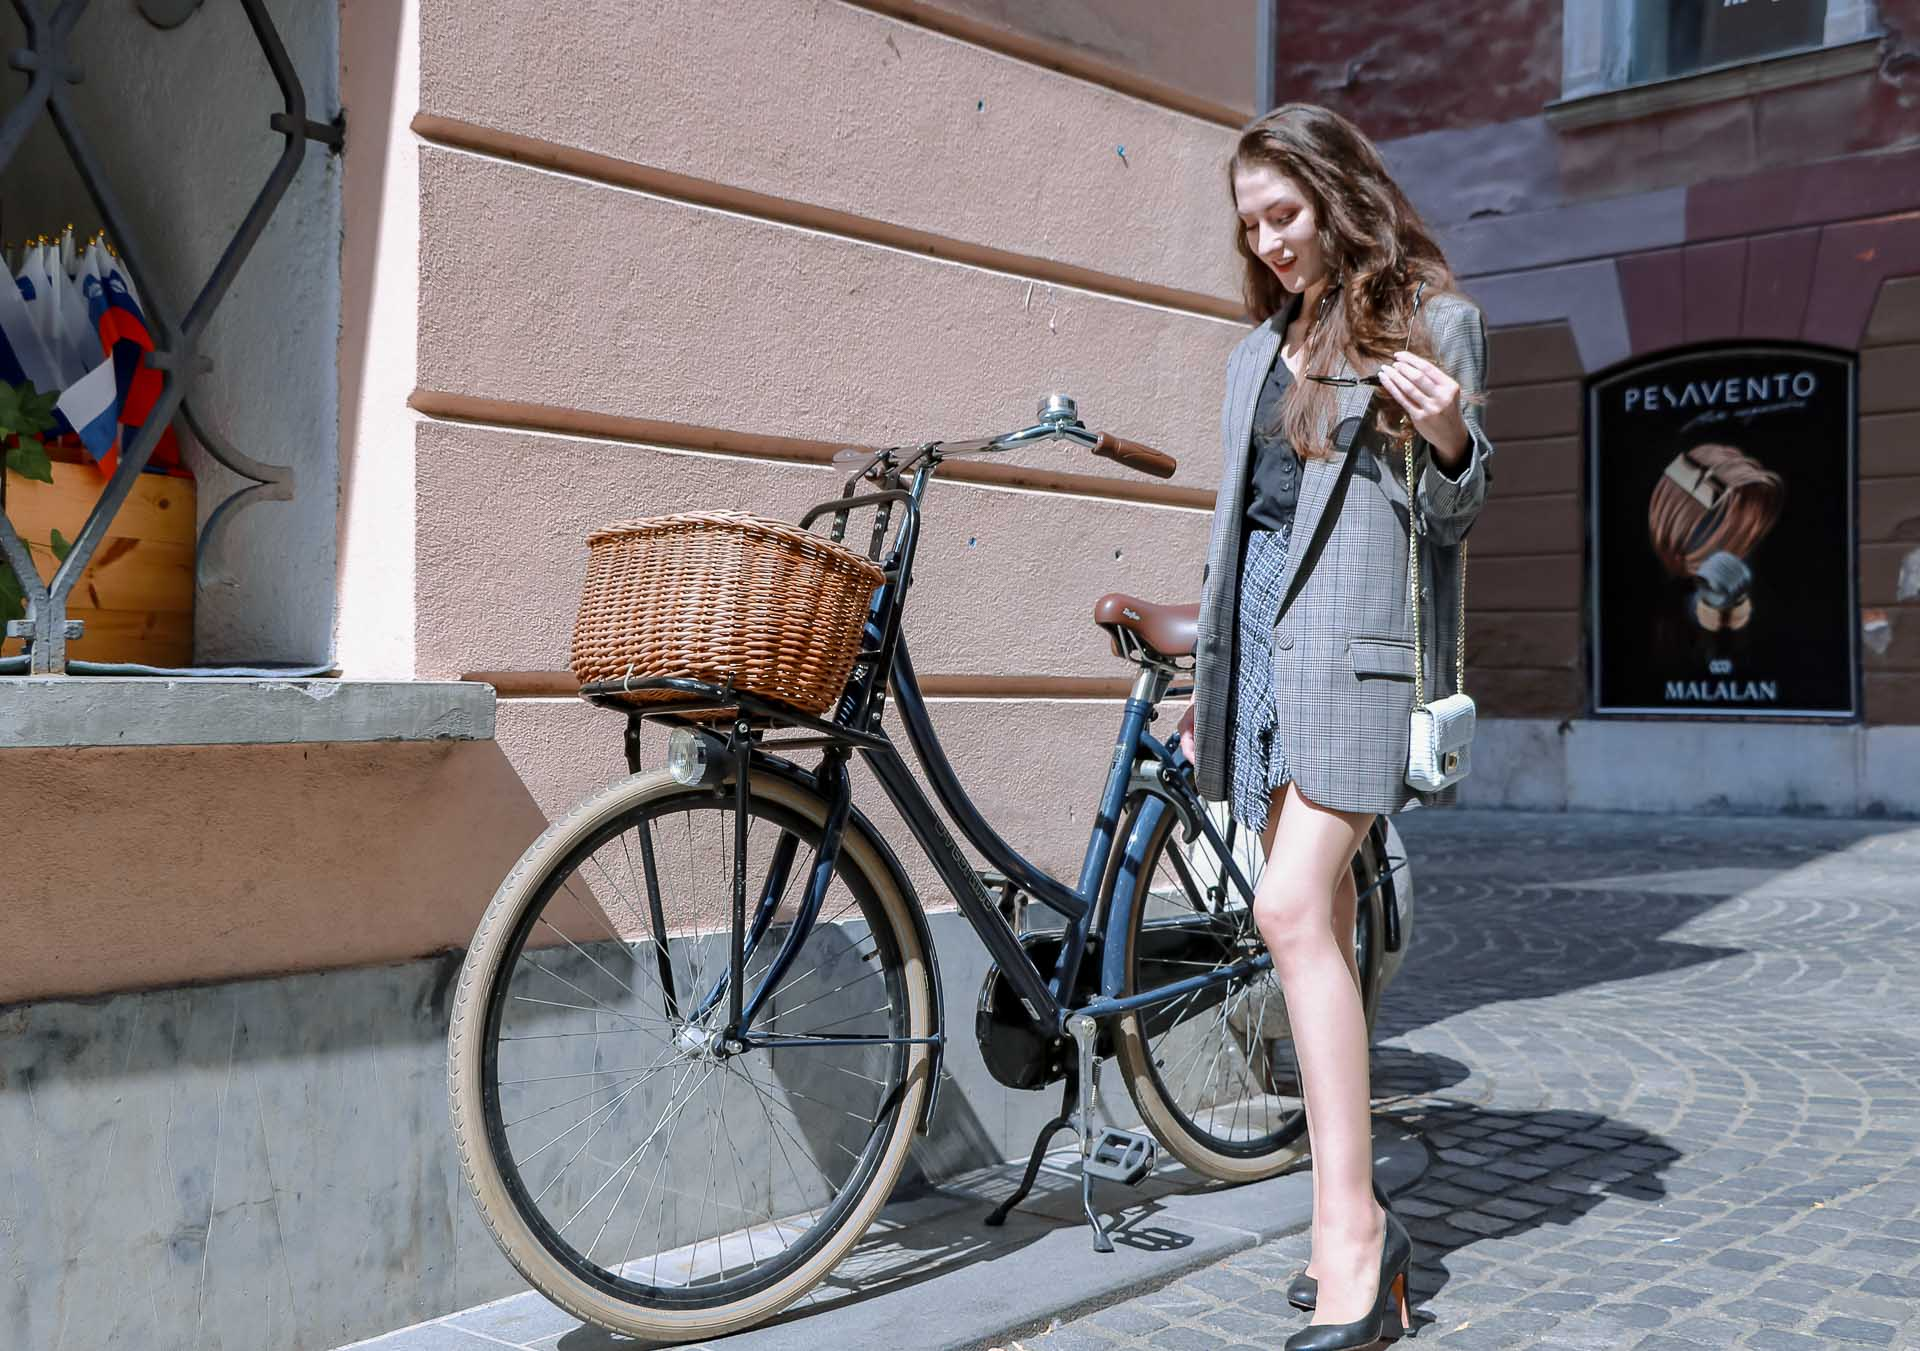 Fashion Blogger Veronika Lipar of Brunette from Wall Street wearing Erika Cavallini oversized boyfriend plaid blazer with short tweed black and white mini skirt from streets, black pumps and white chain strap shoulder bag while standing by the bicycle